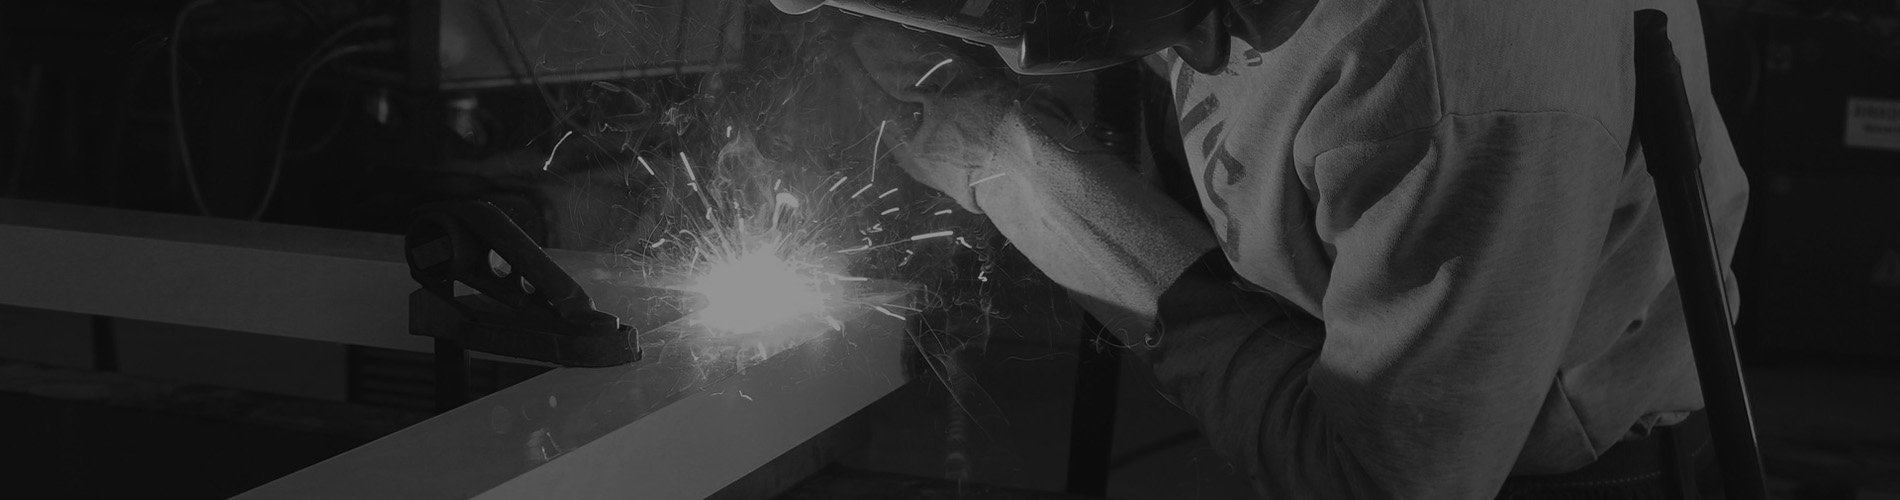 Welding Worker - G&W Products